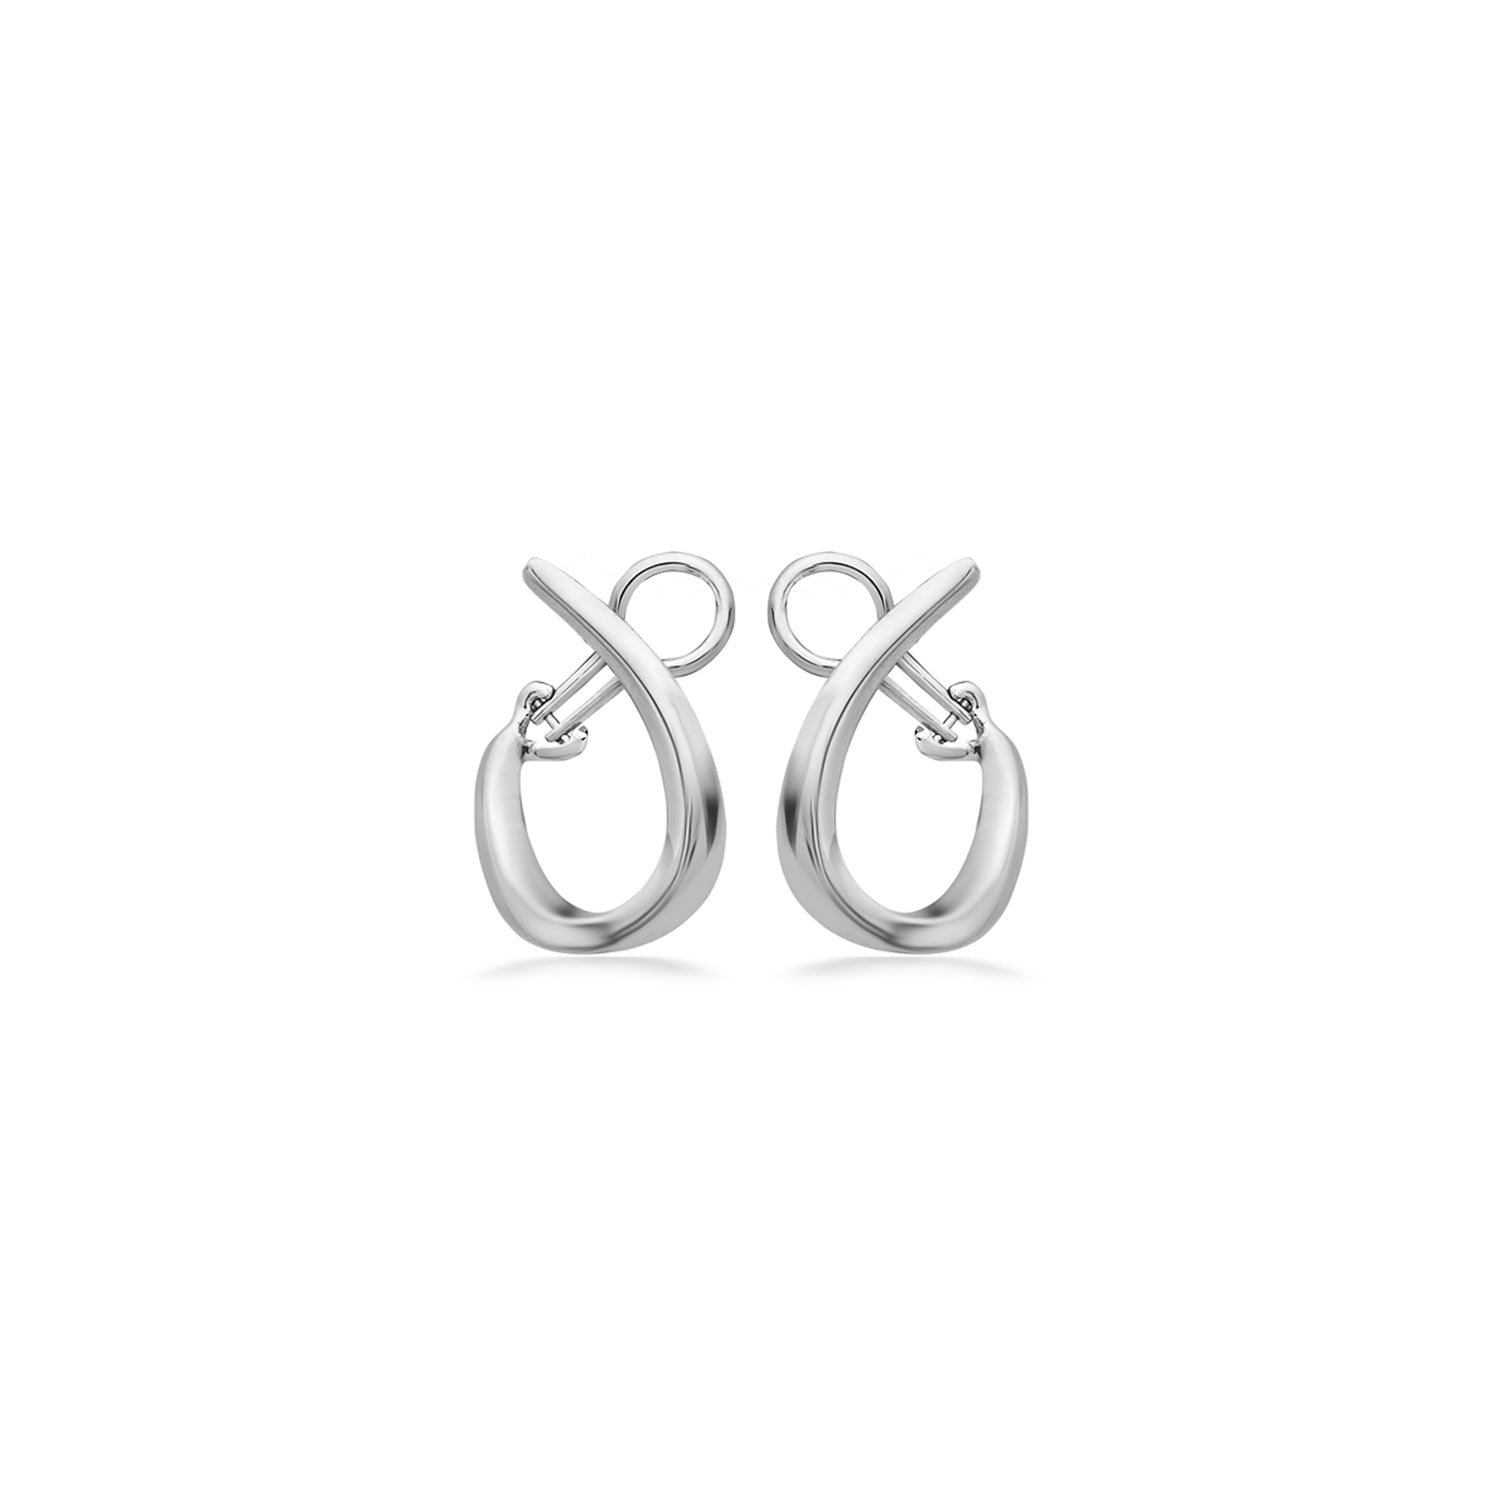 Charles Krypell 26mm Sterling Silver U Hoop Earrings